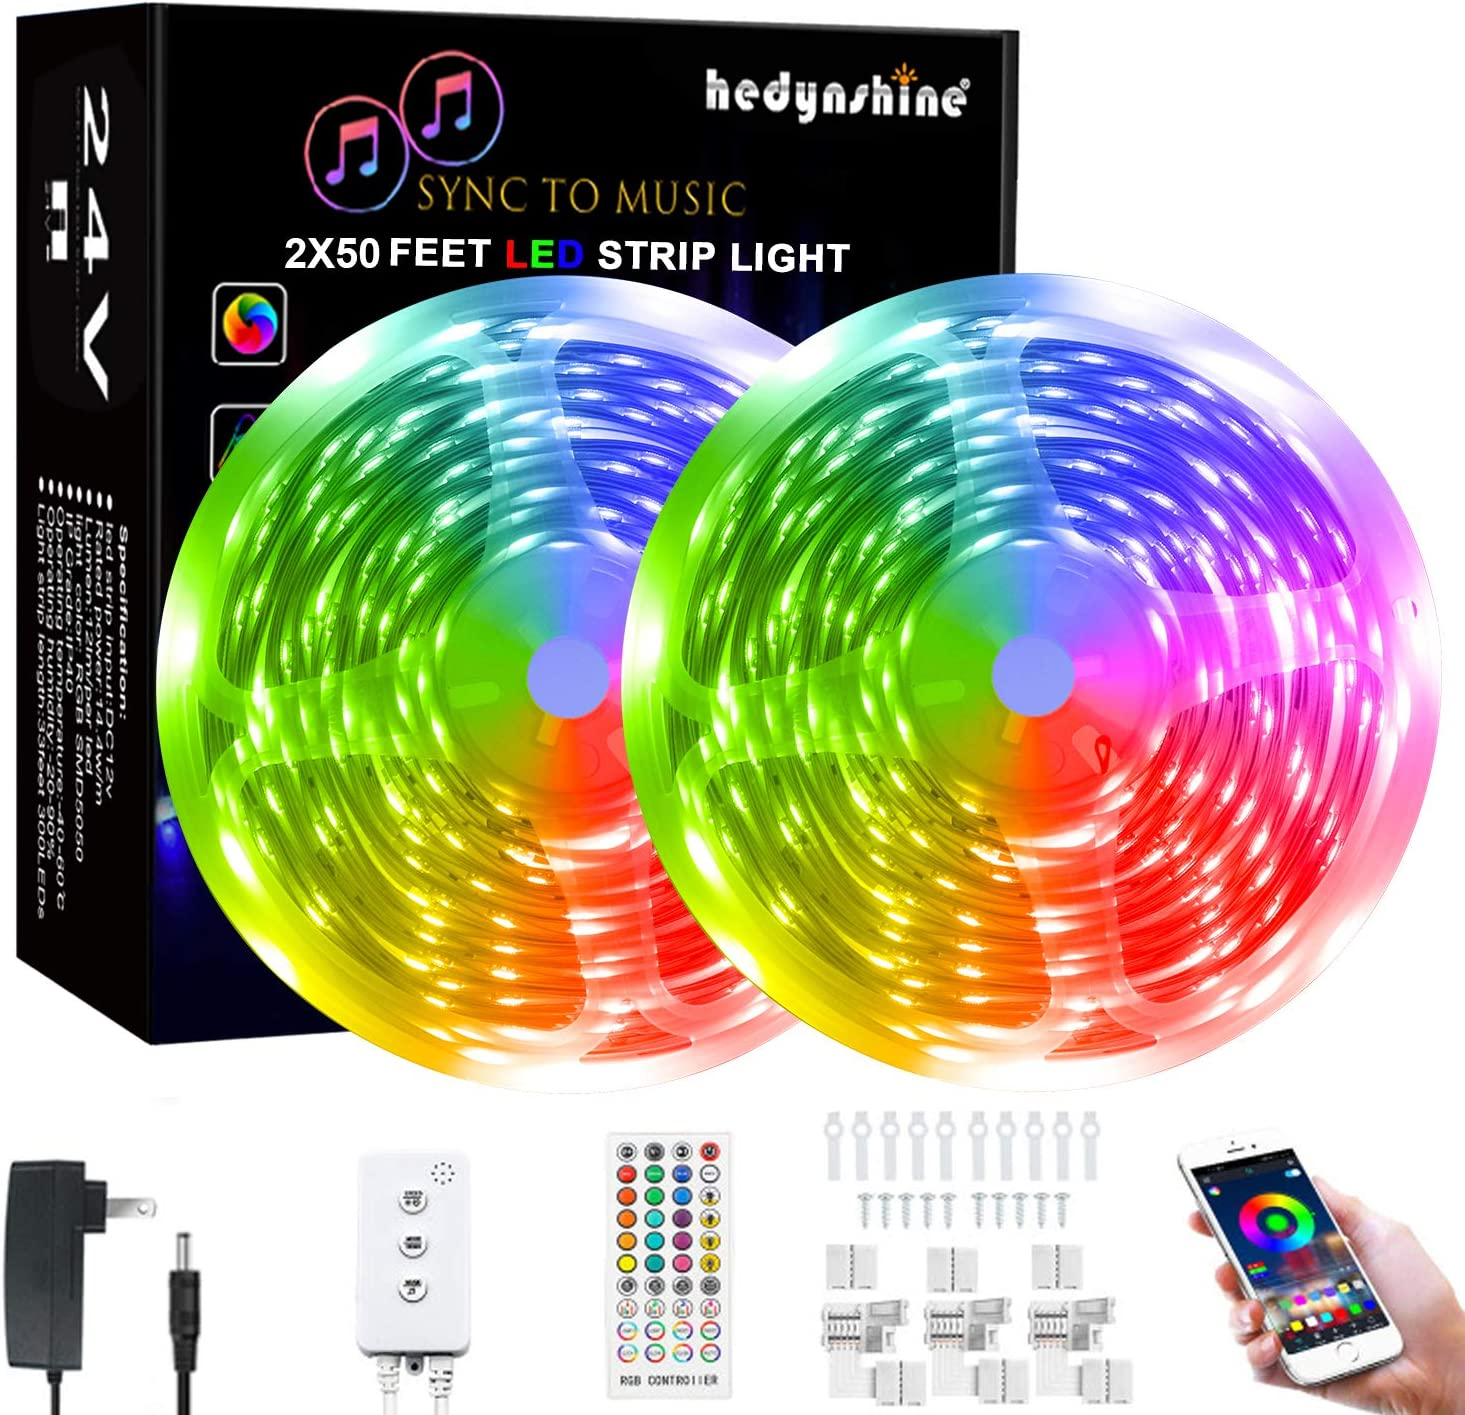 100Ft Smart LED Strip Lights Bluetooth, Hedynshine Dimmable Color Changing by 40Key Remote Controller Ultra Long Strip Lights, Sync to Music Light Strips 100feet